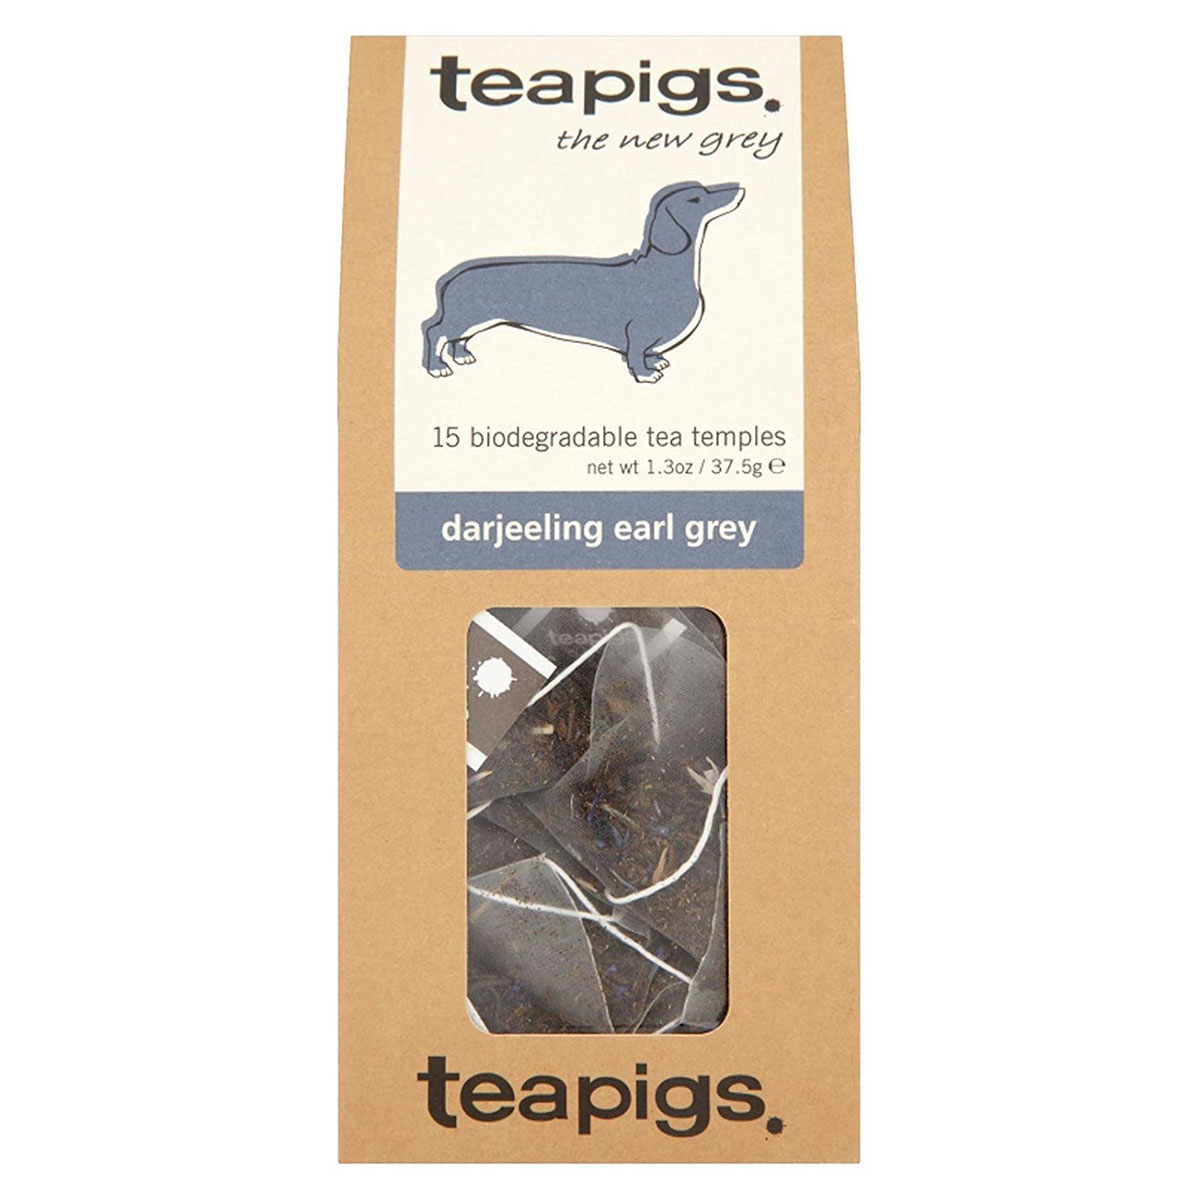 Teapigs Tea, Darjeeling Earl Grey - (Case of 6 - 15 ct)